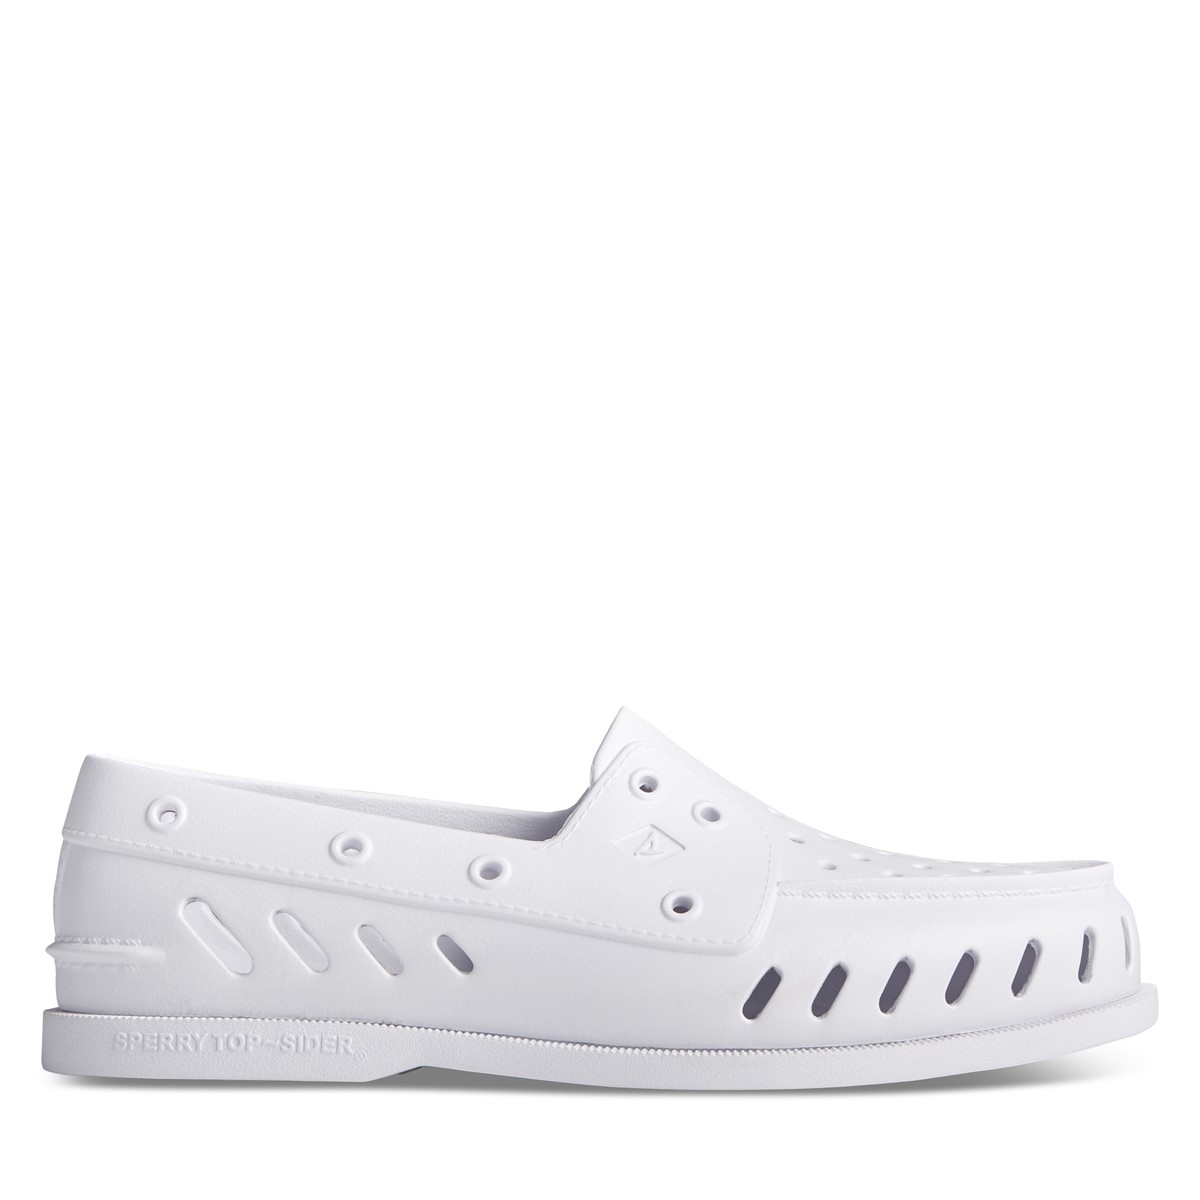 Women's Authentic Original Float Slip-On Boat Shoes in White